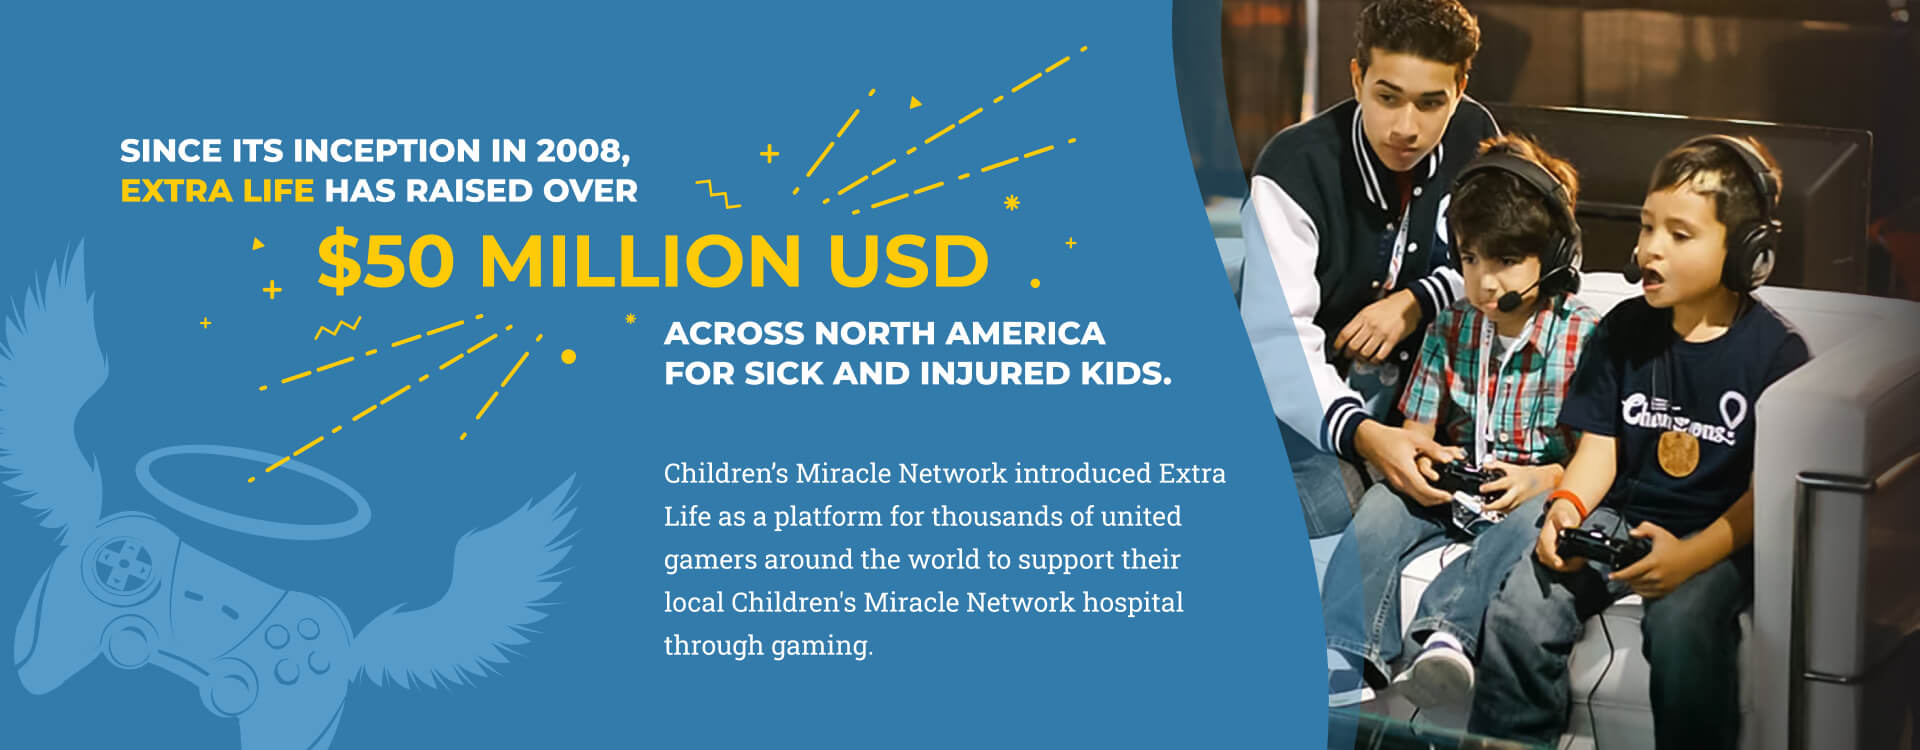 Slide 3 - Since its inception in 2008, Extra Life has raised over $50 million USD across North America for sick and injured kids. Children's Miracle Network introduced Extra Life as a platform for thousands of united gamers around the world to support their local Children's Miracle Network hospital through gaming.